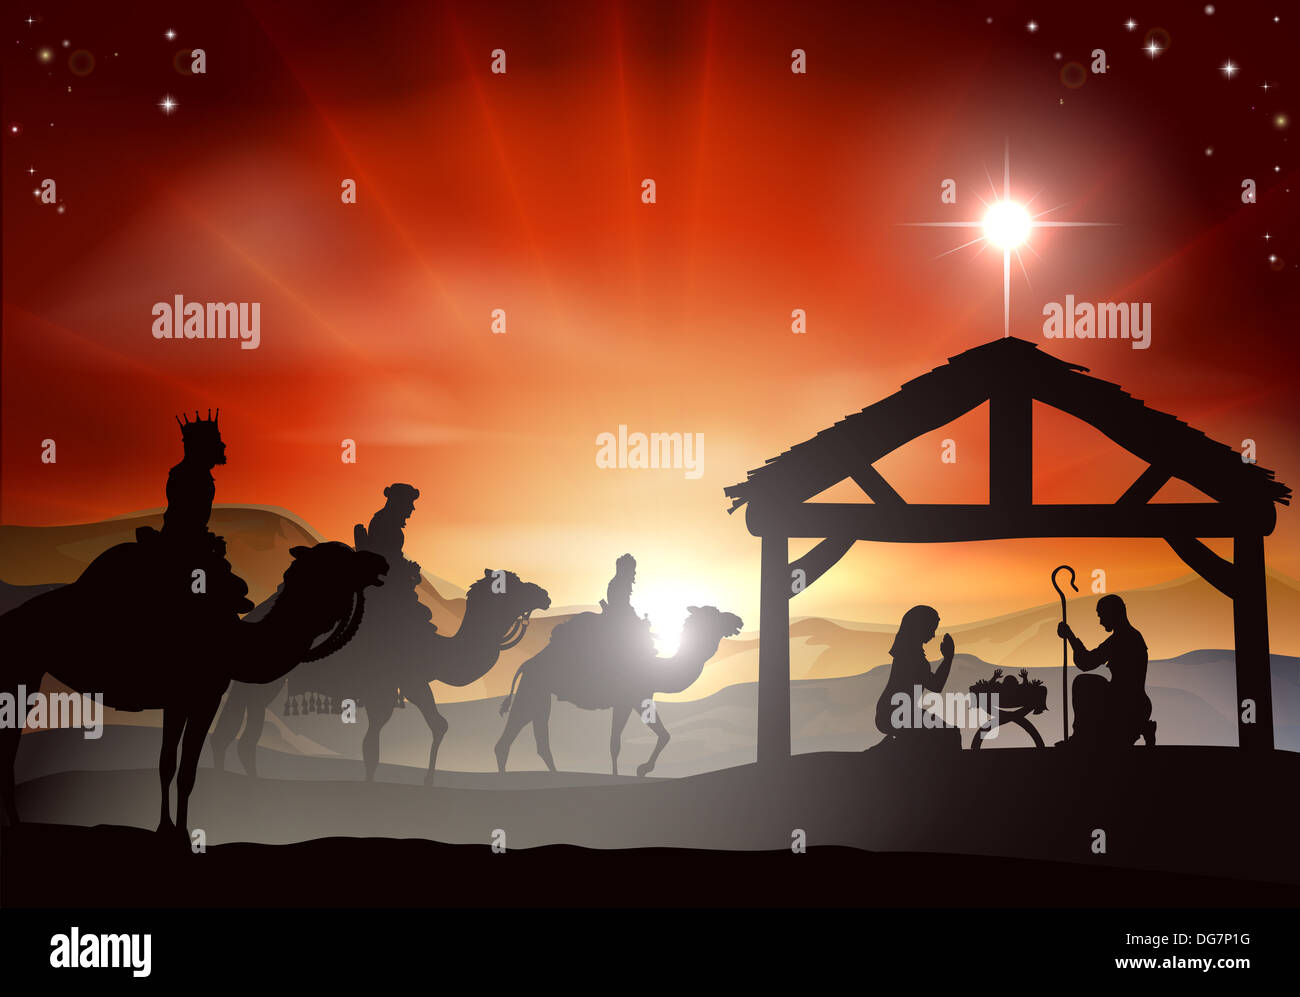 christmas nativity scene with baby jesus in the manger in silhouette